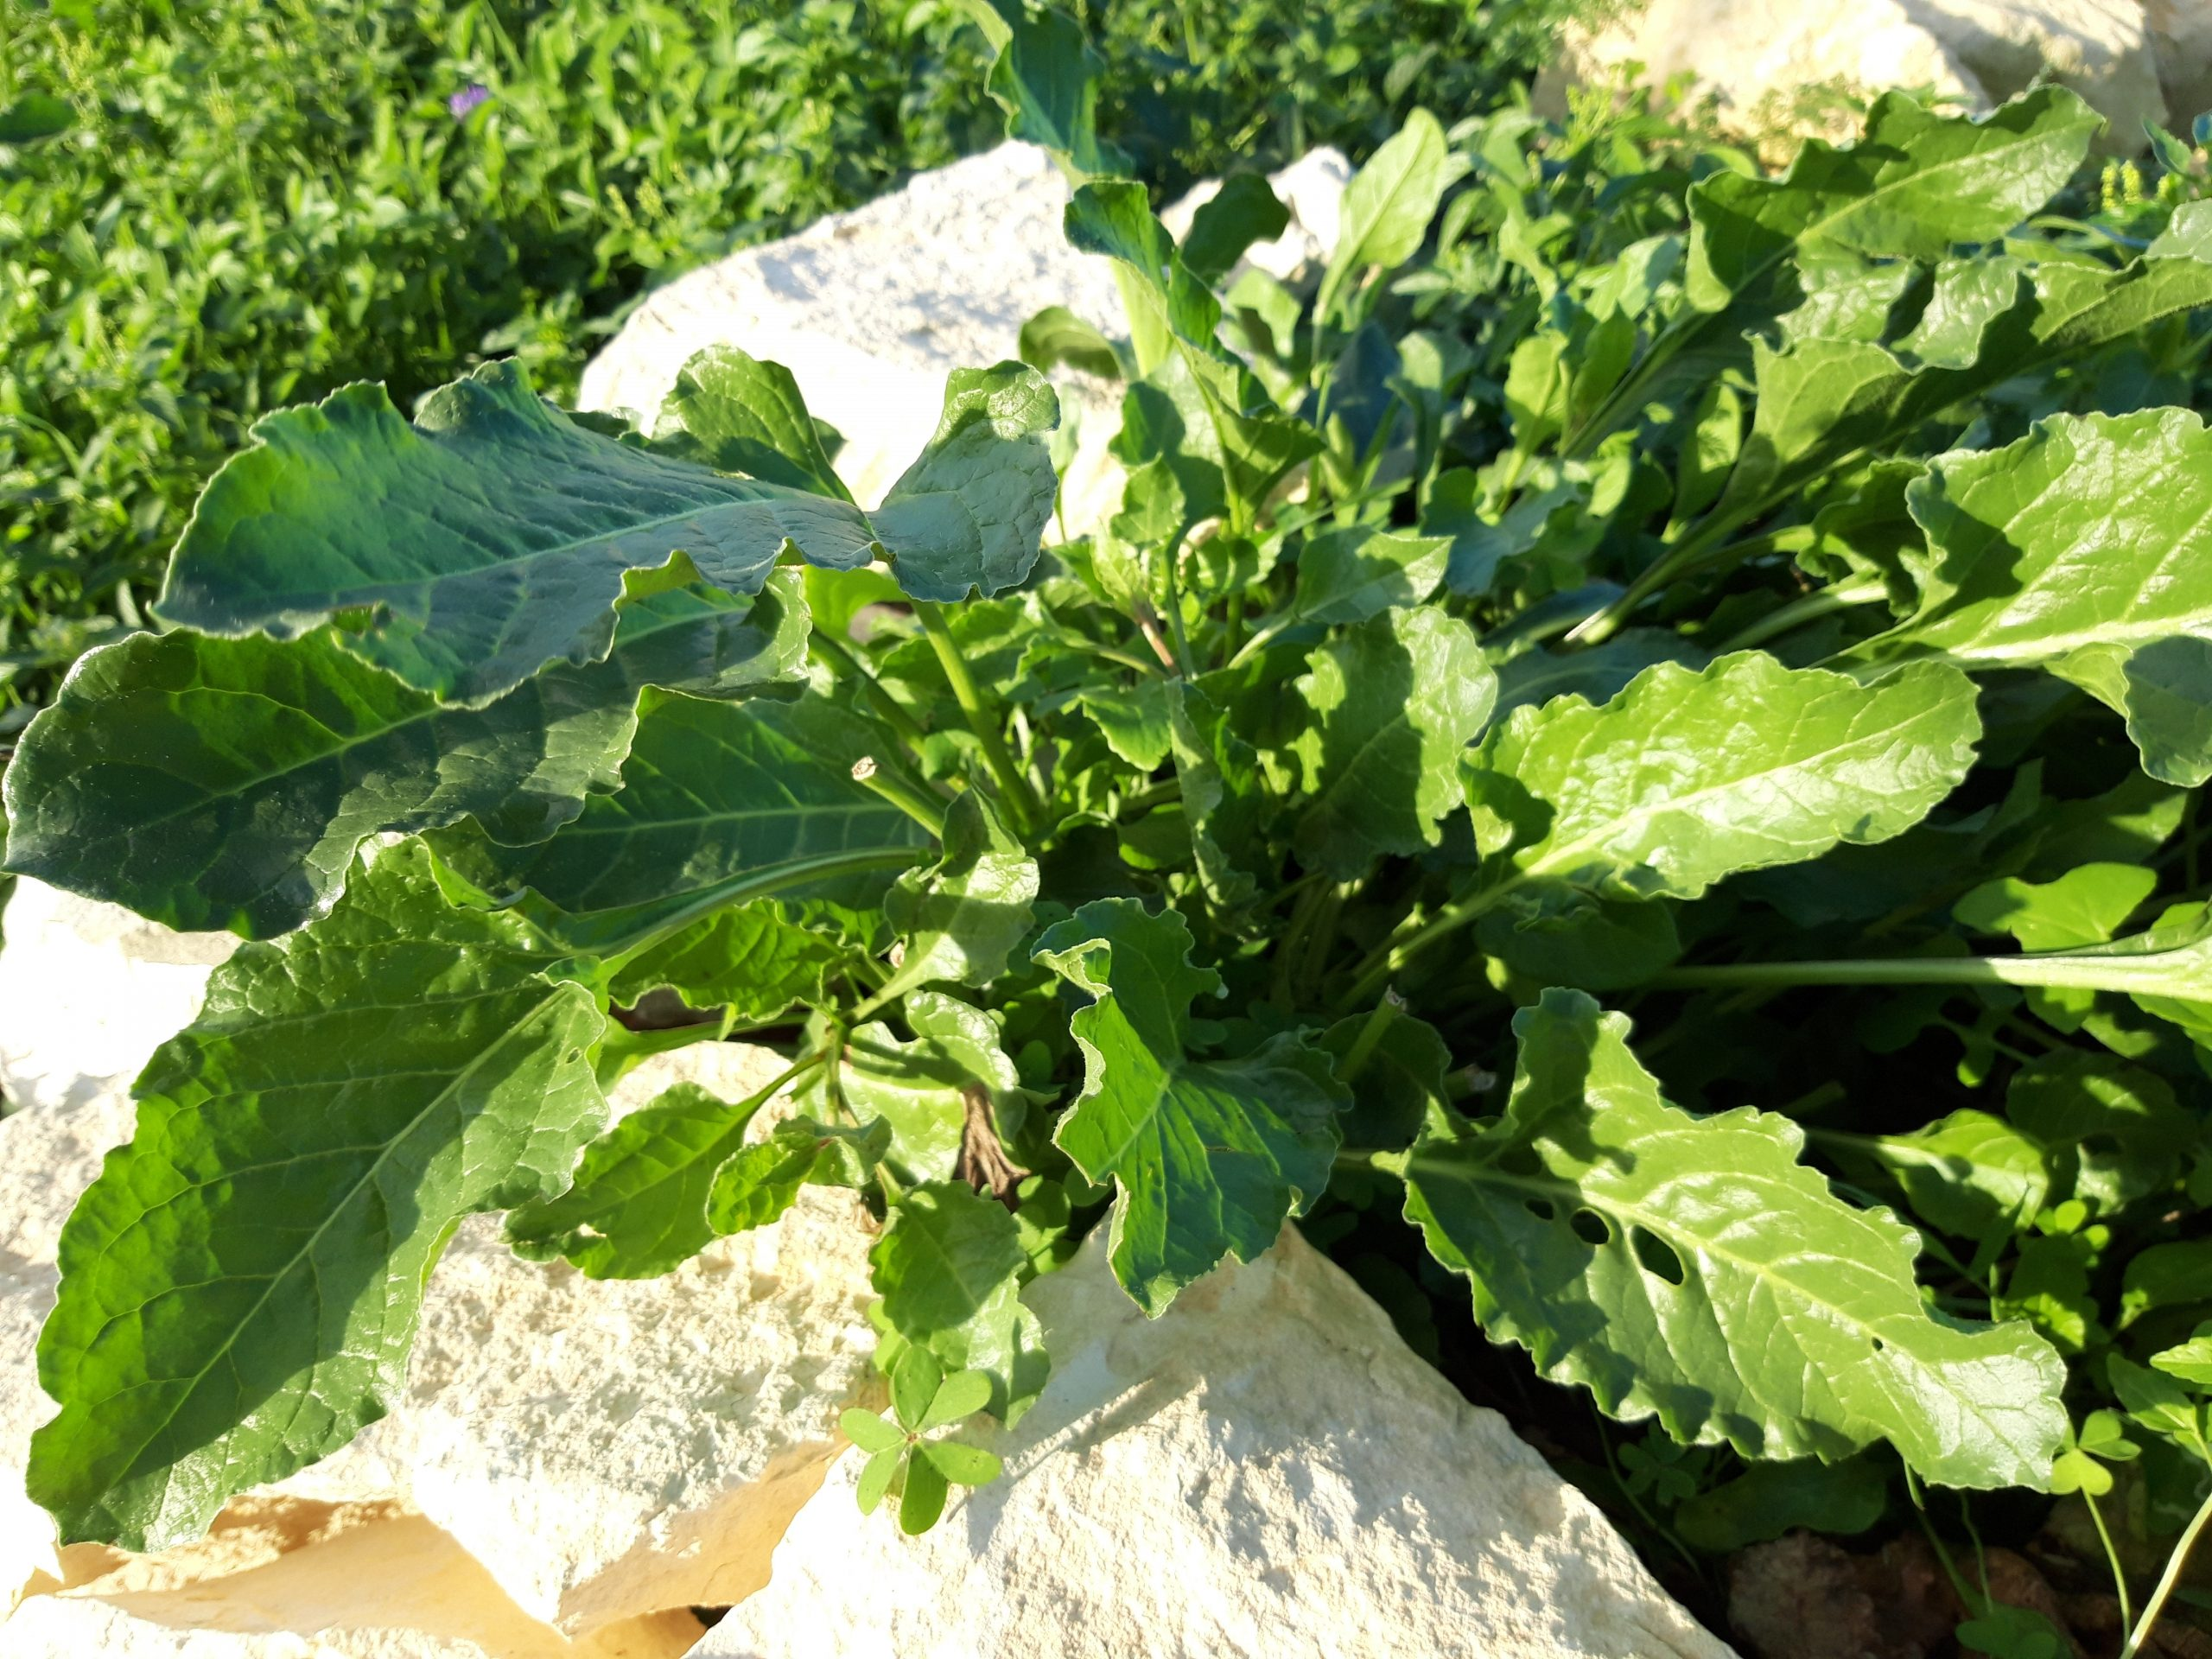 Sea Beet growing wild at our Community Garden